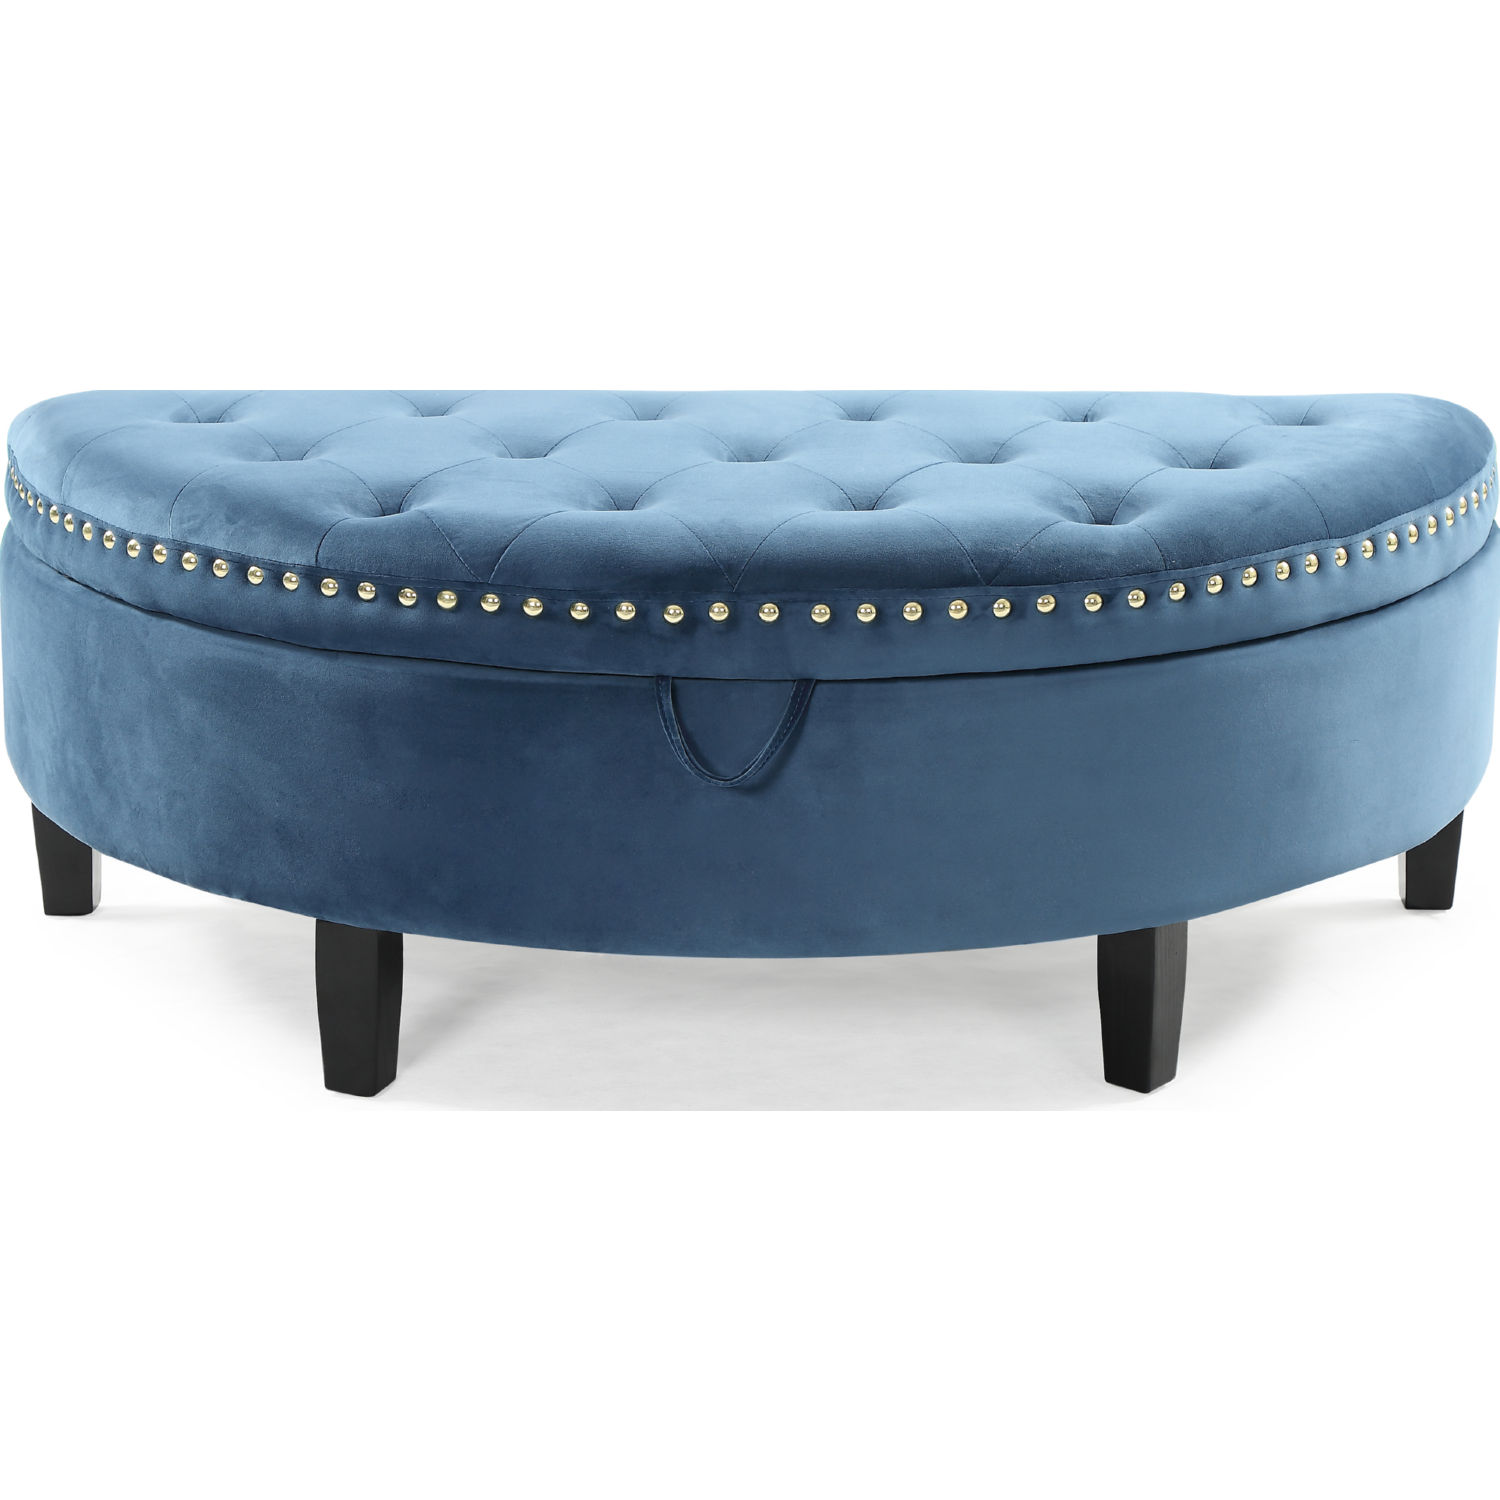 Fabulous Jacqueline Half Moon Storage Ottoman In Tufted Teal Blue Velvet By Chic Home Creativecarmelina Interior Chair Design Creativecarmelinacom